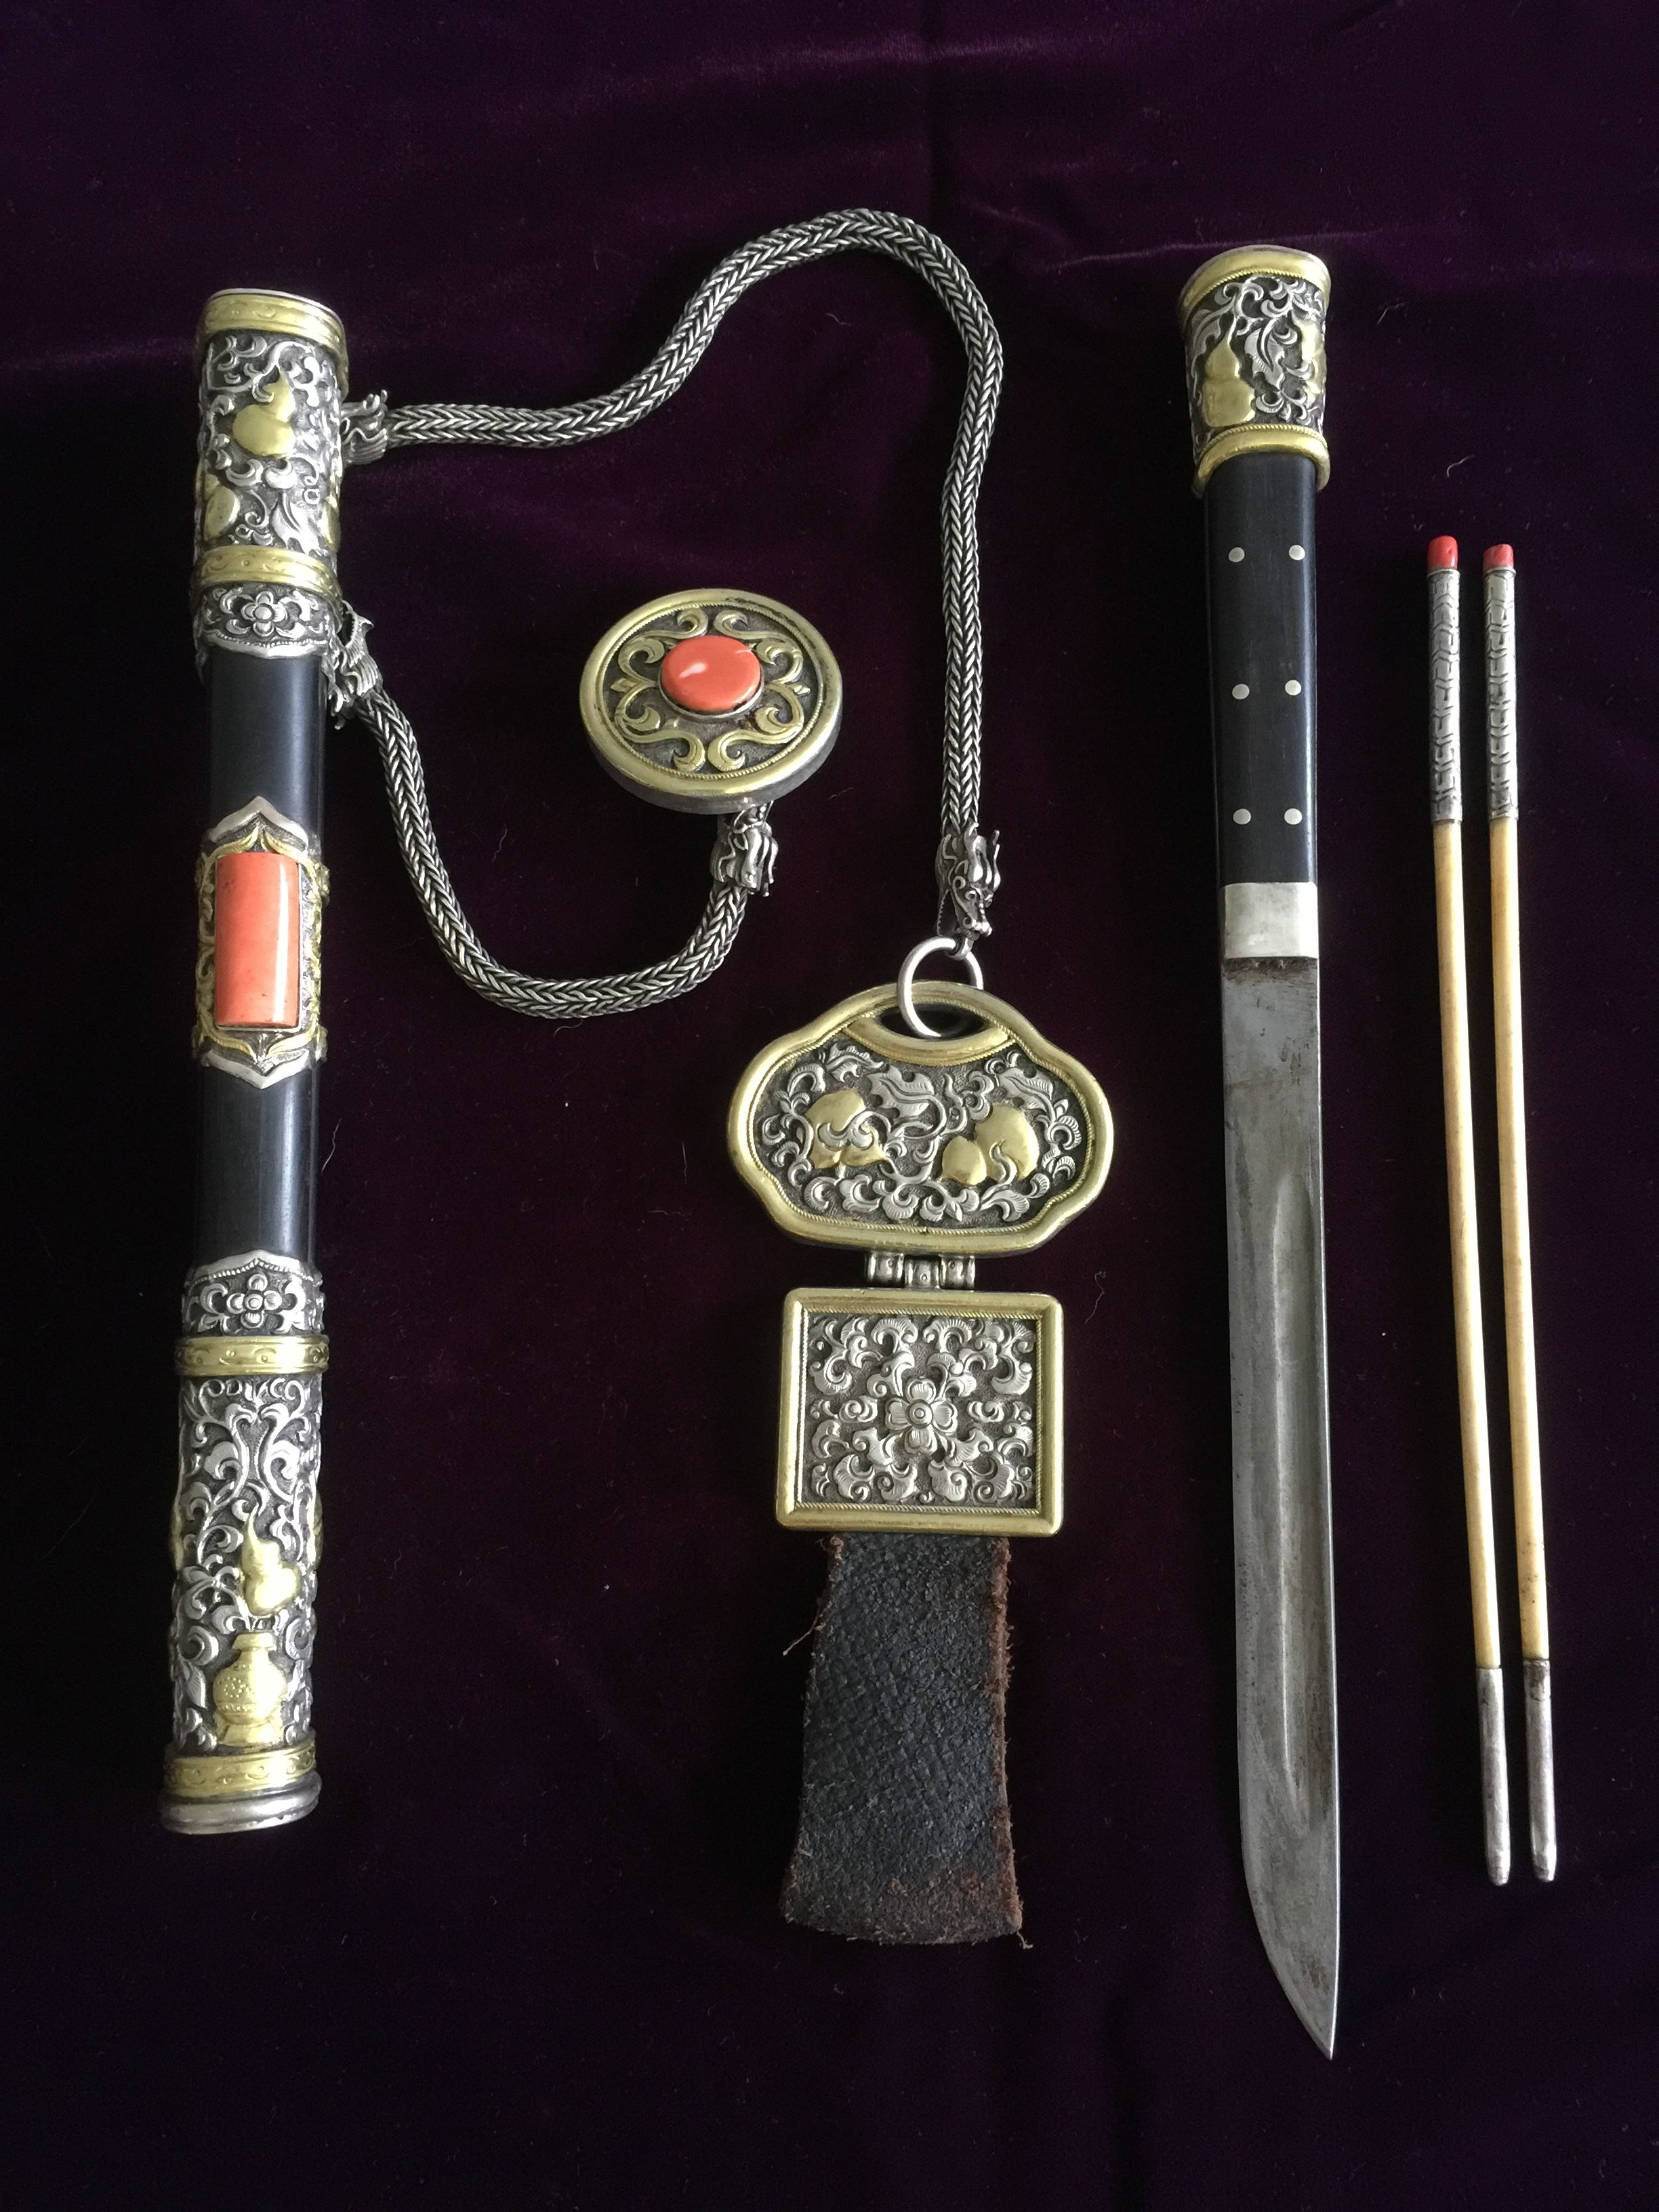 Mongolian knife set, with a pair of ivory chopsticks, a gilt silver and coral toggle and a leather and silver belt pendant. Sheath, belt pendant and knife handle each has gourds and leaves motif on partially gilded silver. 19th c AD